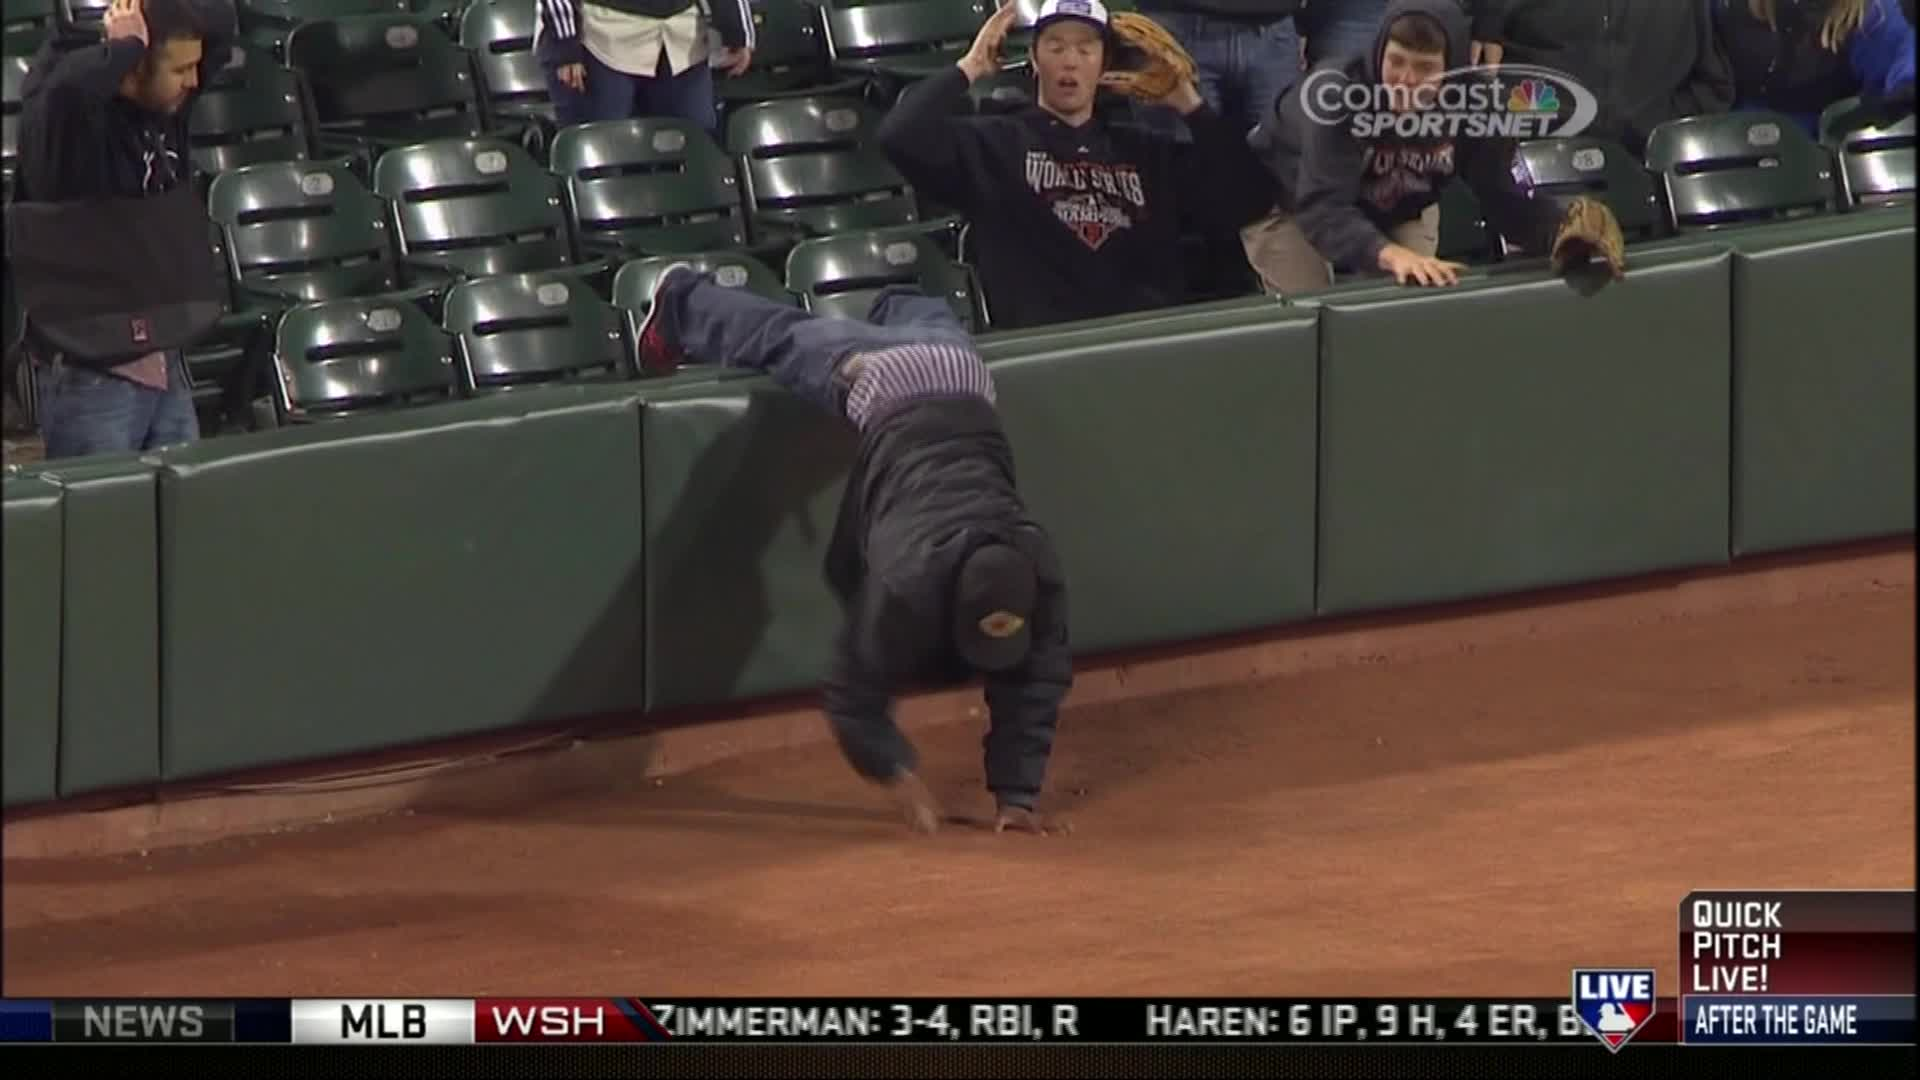 WATCH: San Francisco Giants fan loses pants trying to grab fair ball